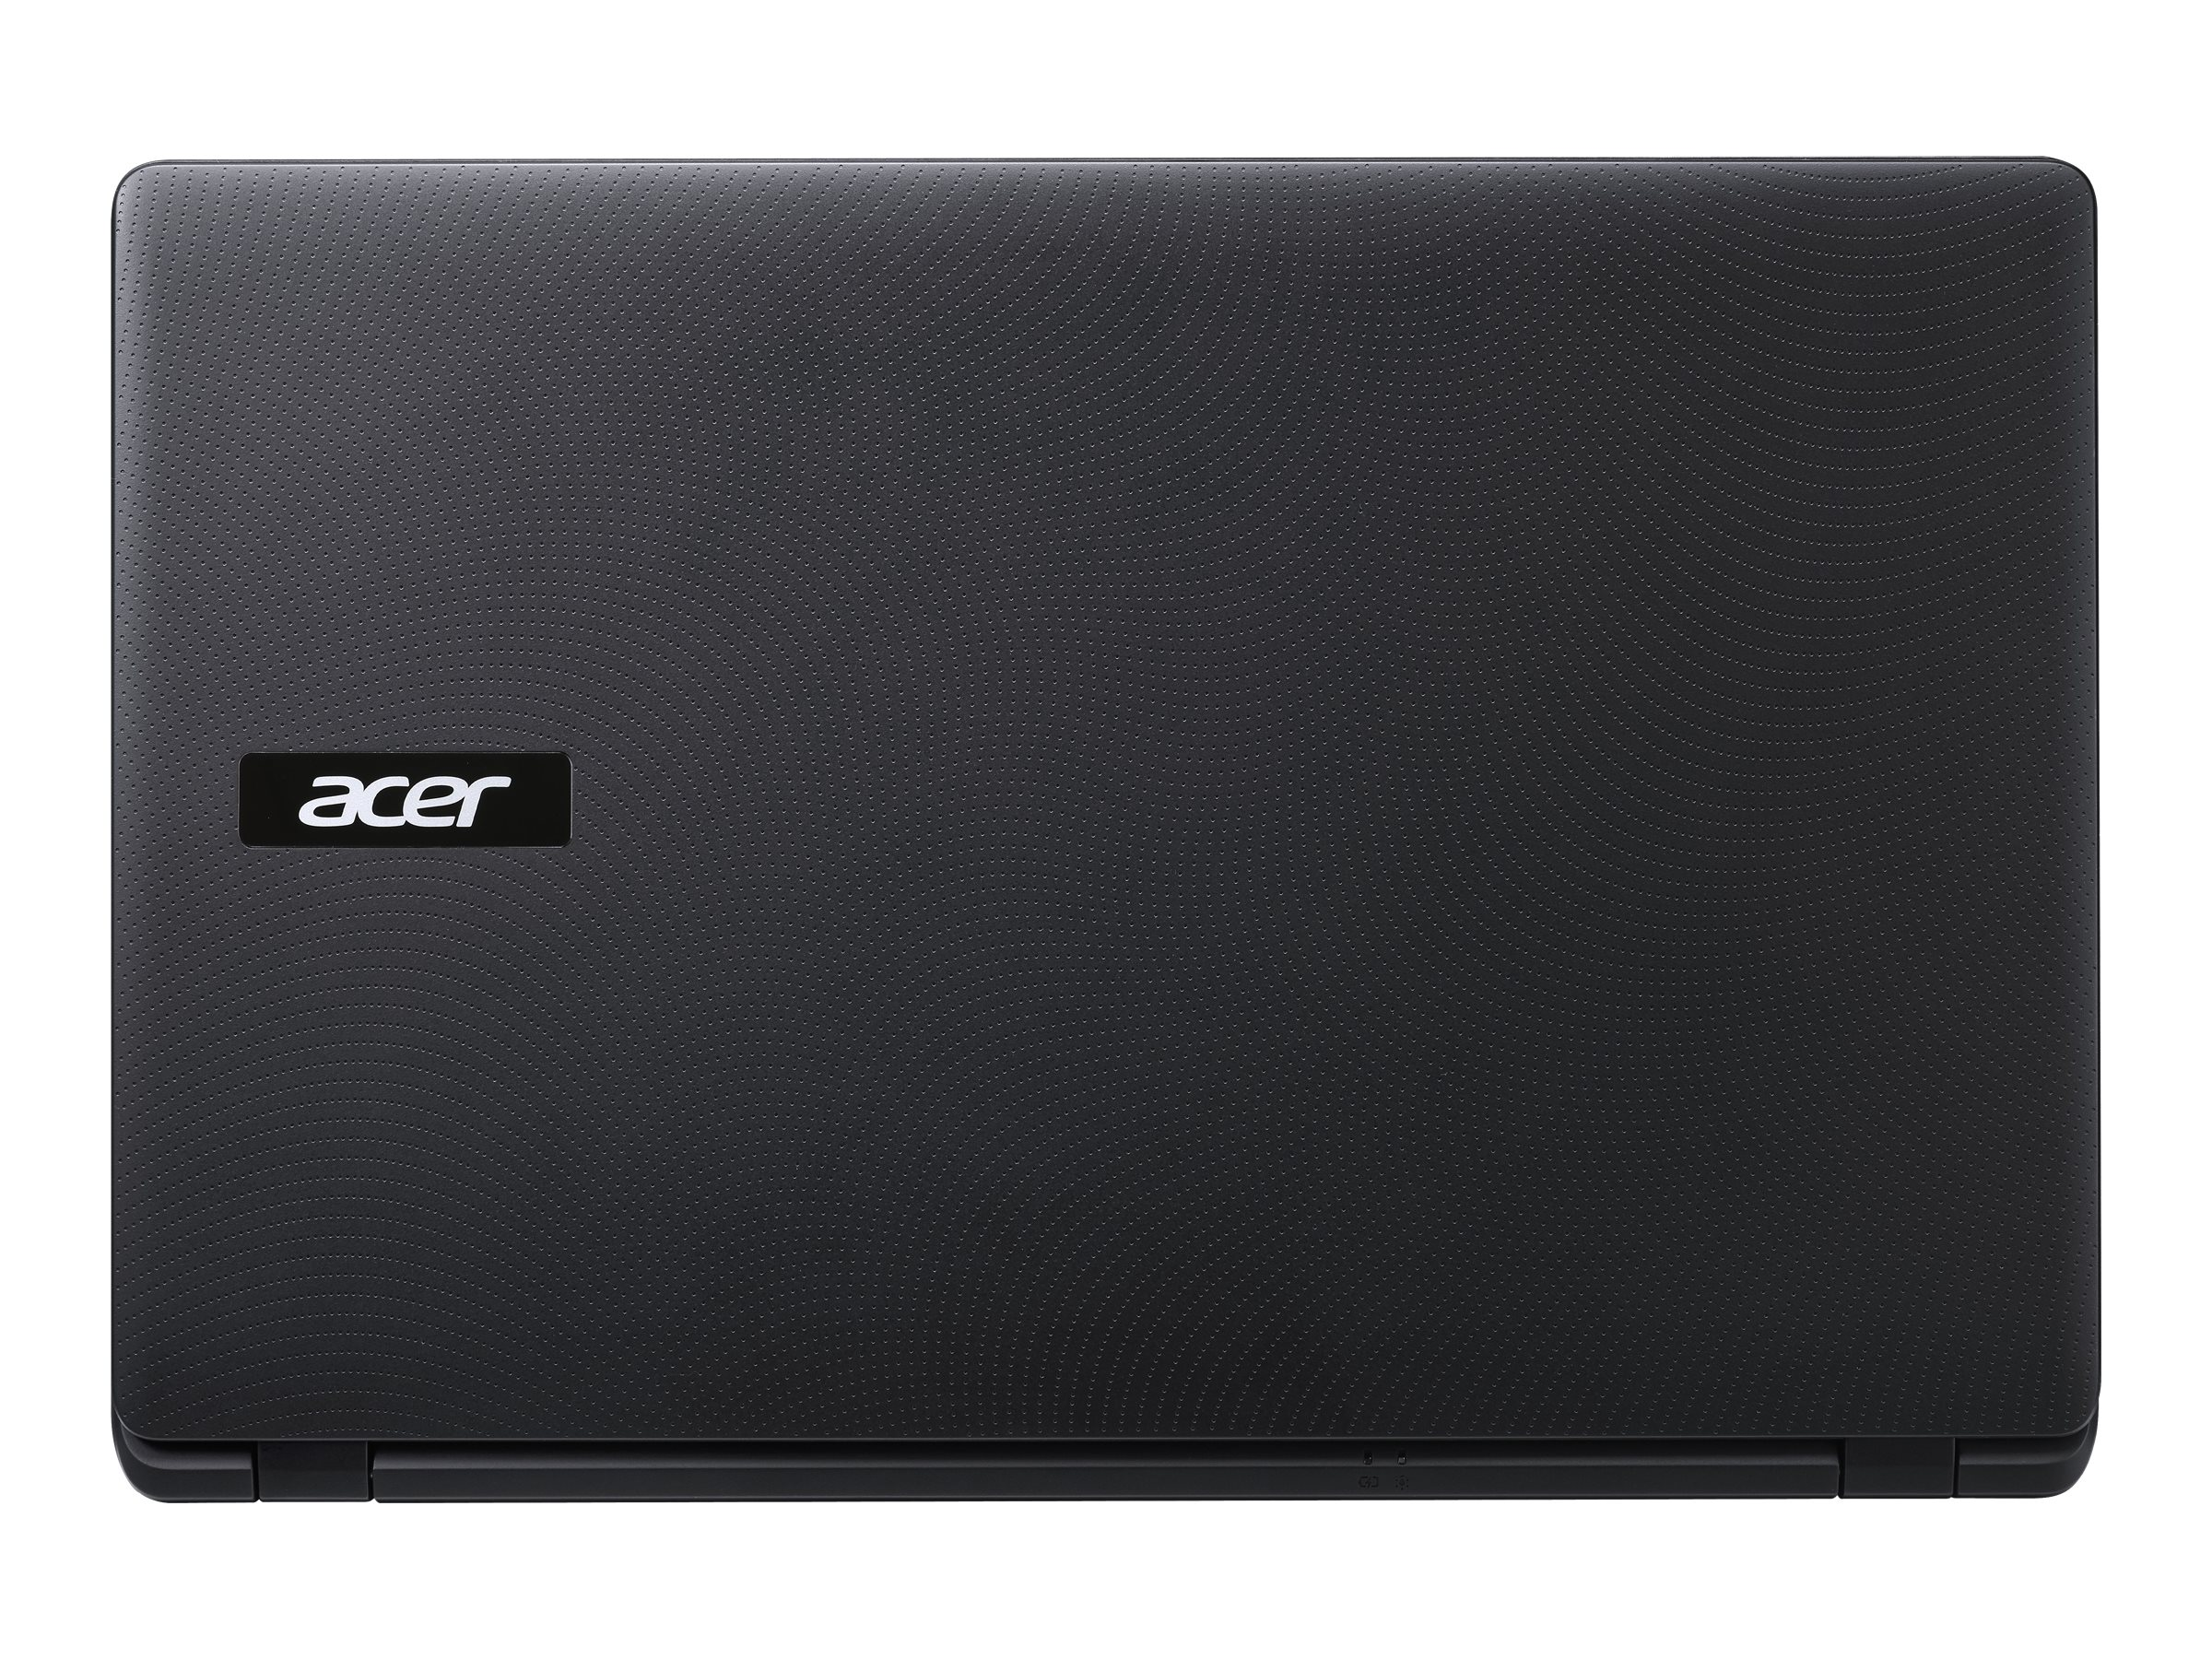 Acer Aspire ES1-571-C7N9 1.4GHz Celeron 15.6in display, NX.GCEAA.004